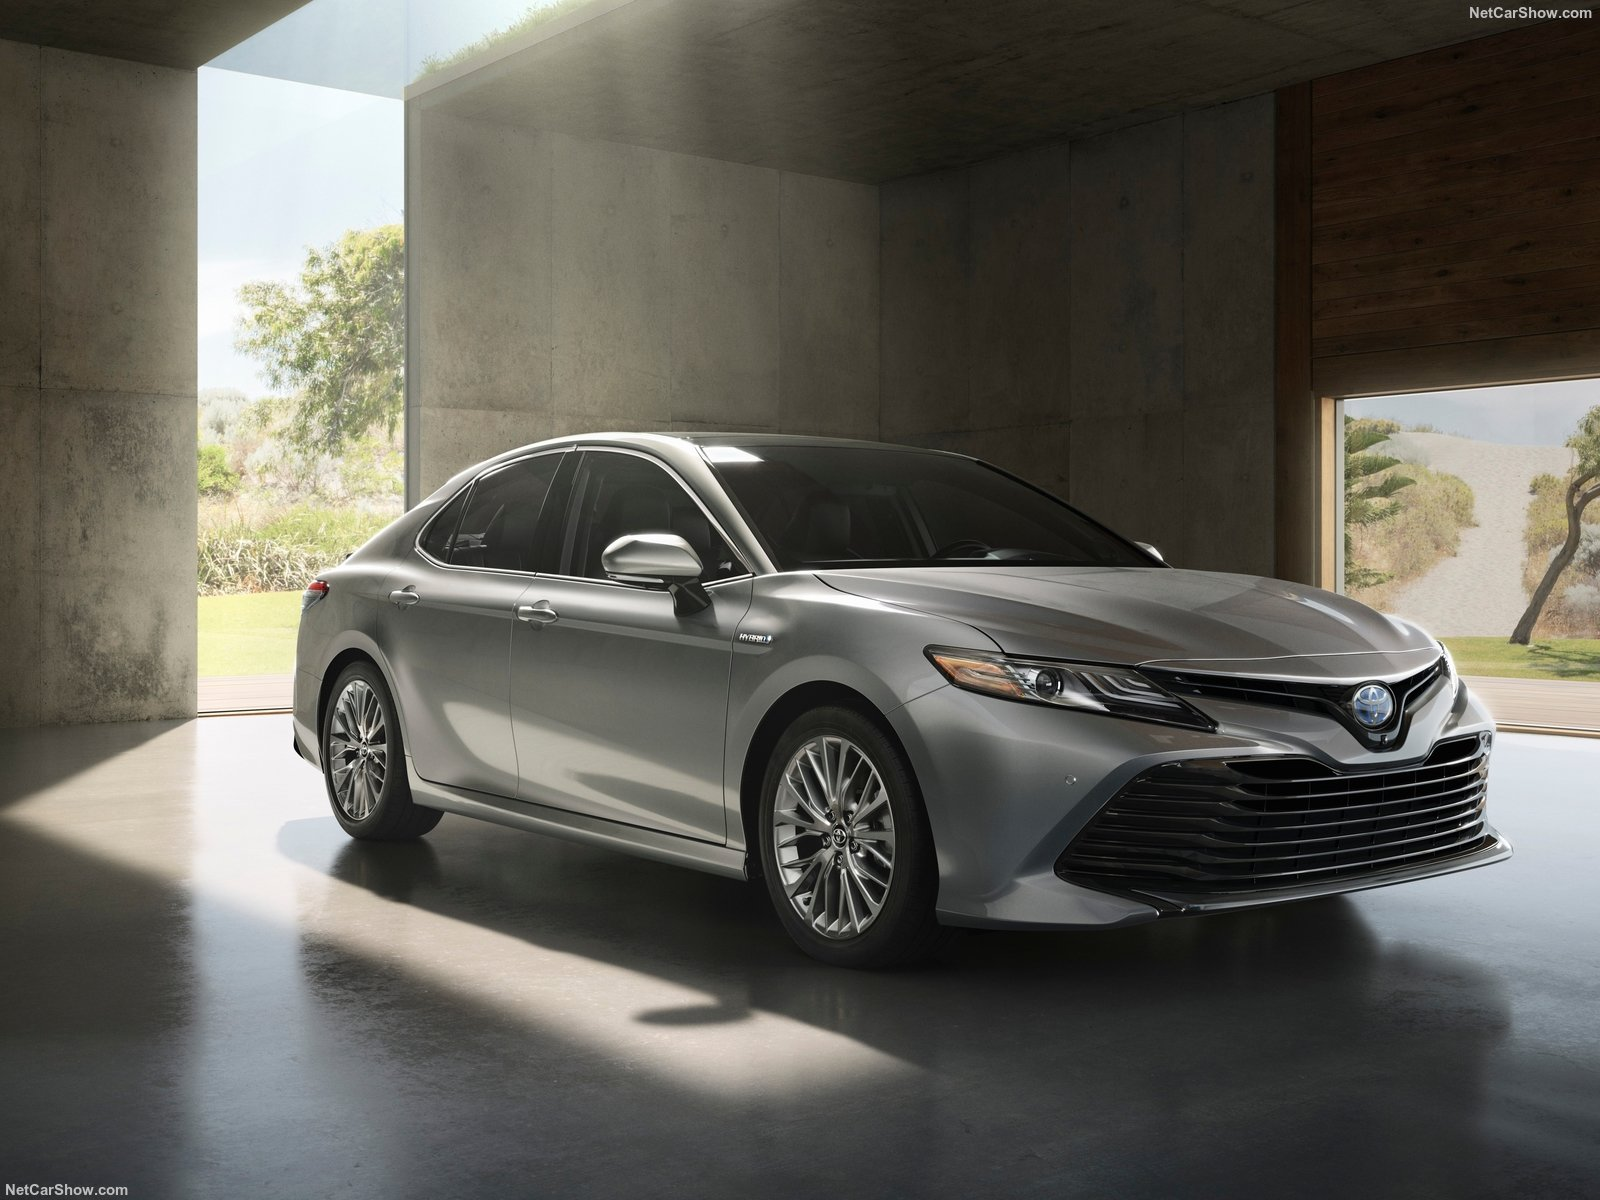 brand new camry price agya g a/t trd toyota 2019 prices in pakistan pictures reviews pakwheels 2018 the best sedan i